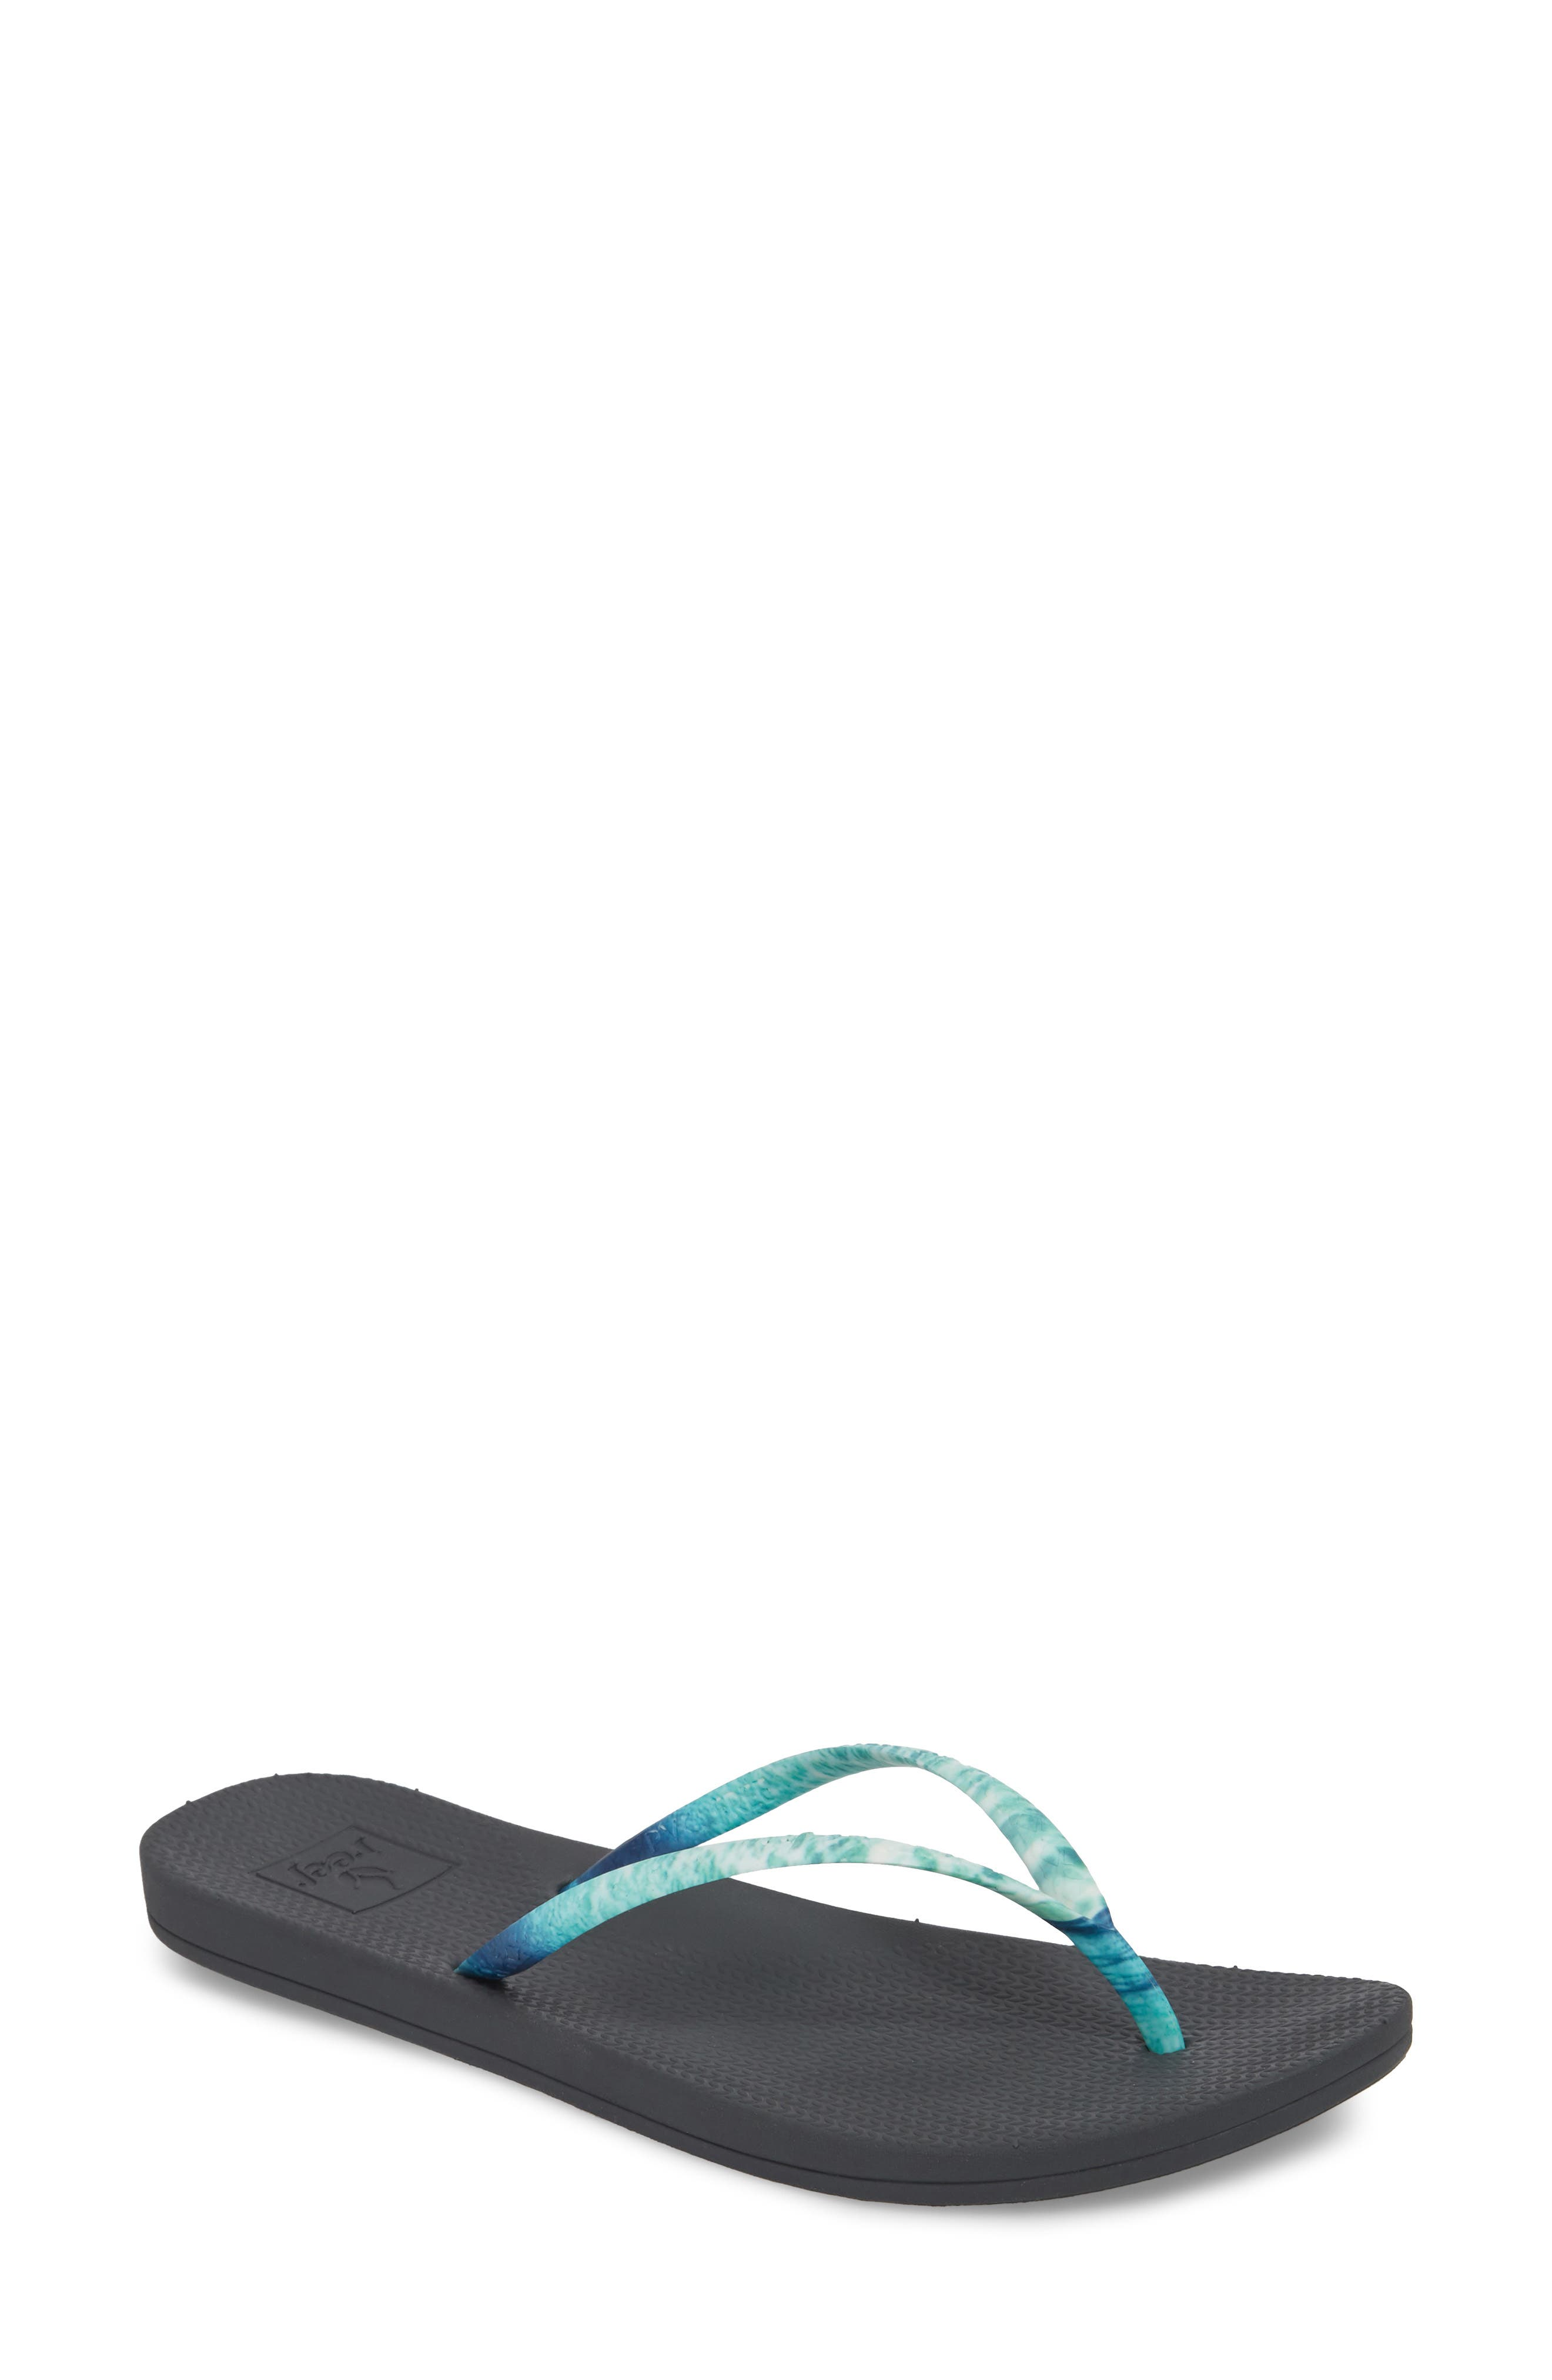 Reef Escape Luxe Nature Flip Flop (Women)